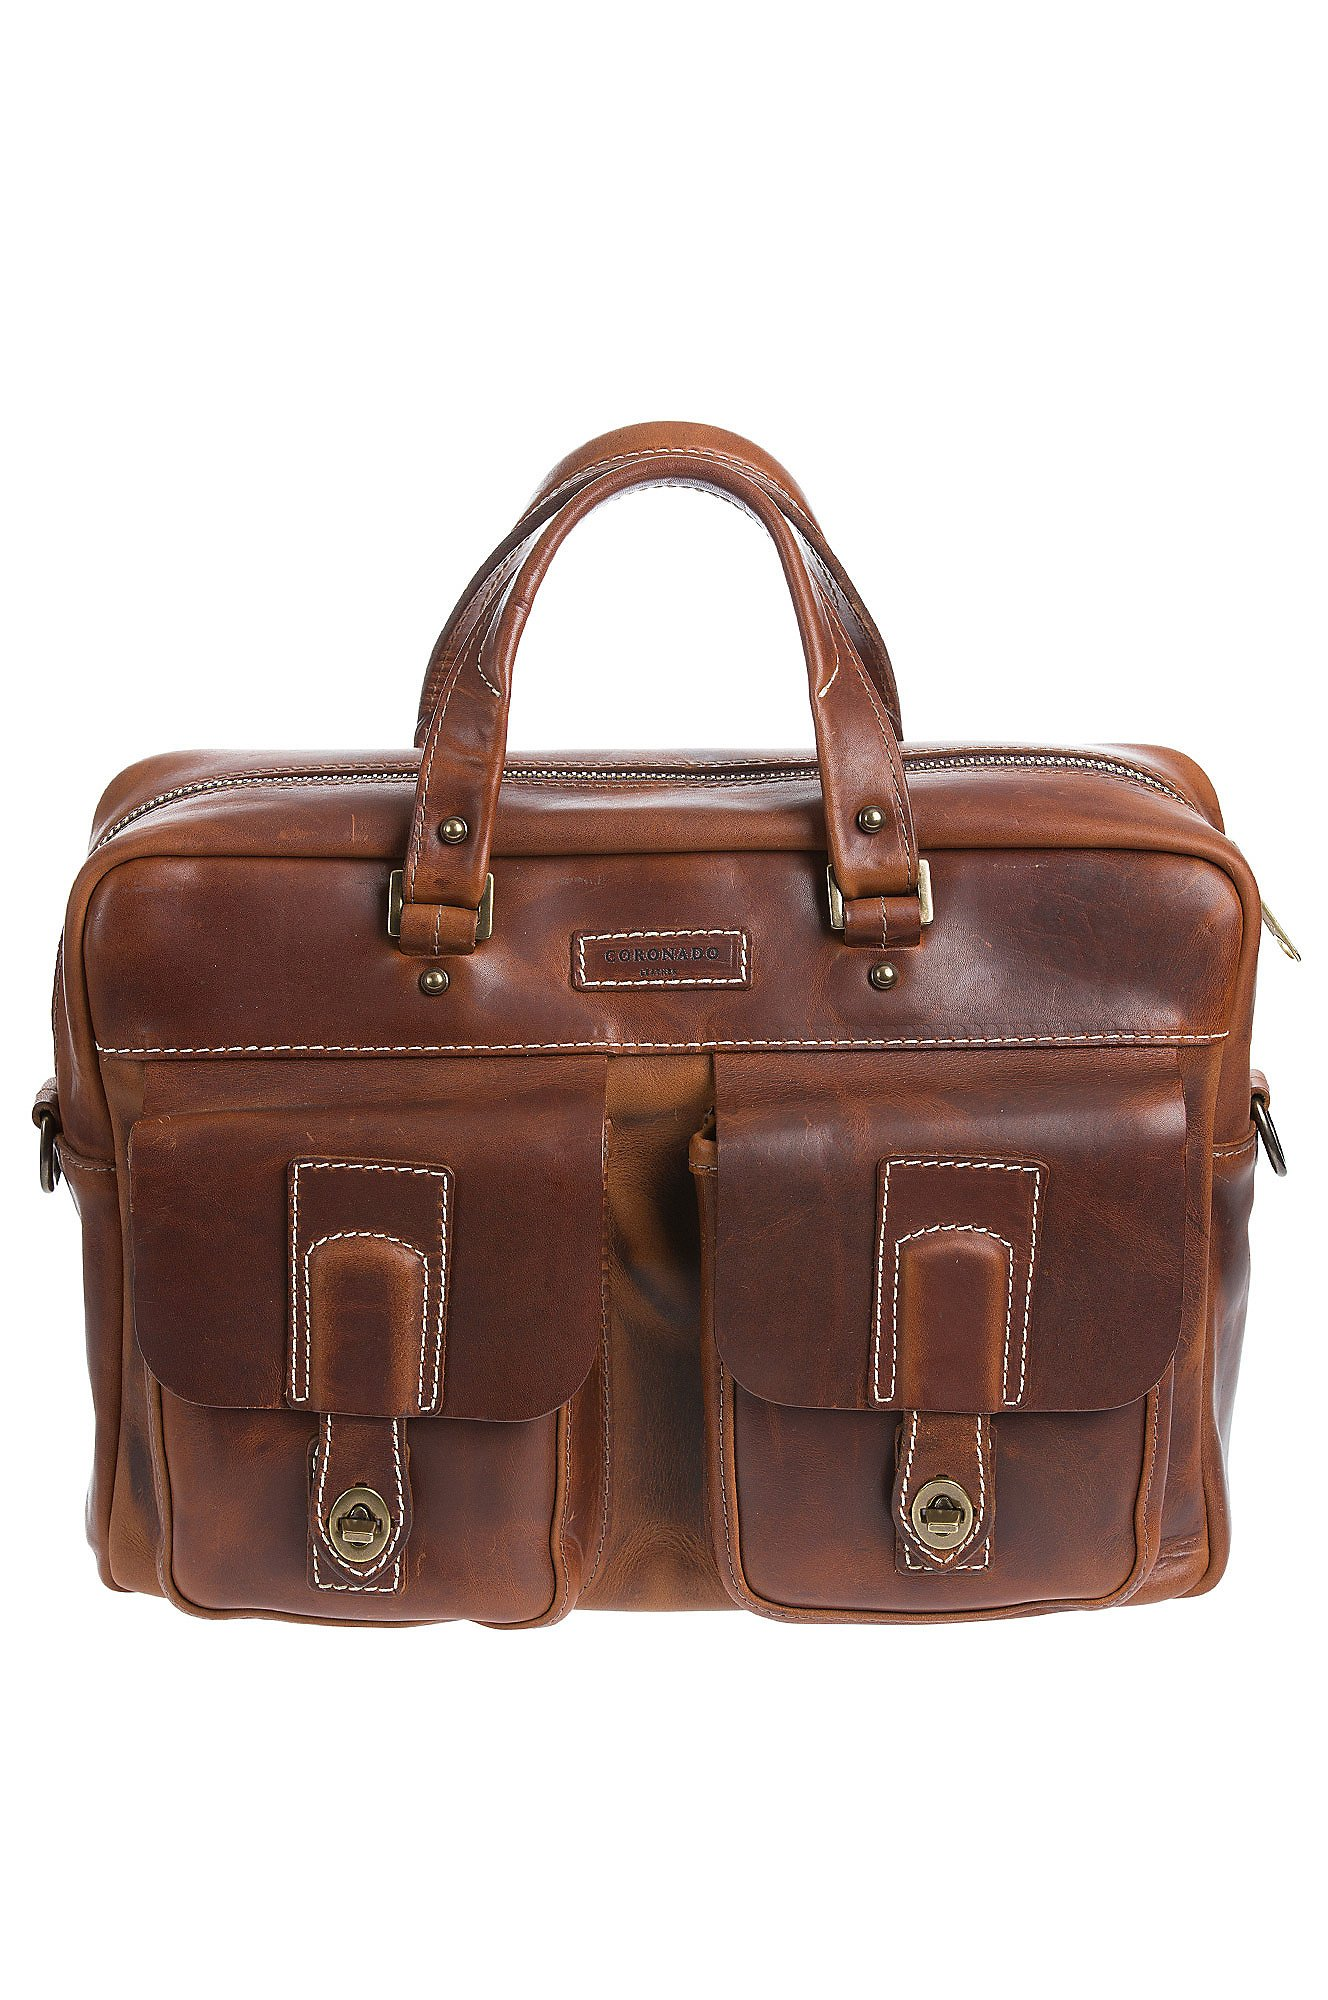 Americana CEO Leather Briefcase with Concealed Carry Pocket, CHESTNUT, Size 1 Size